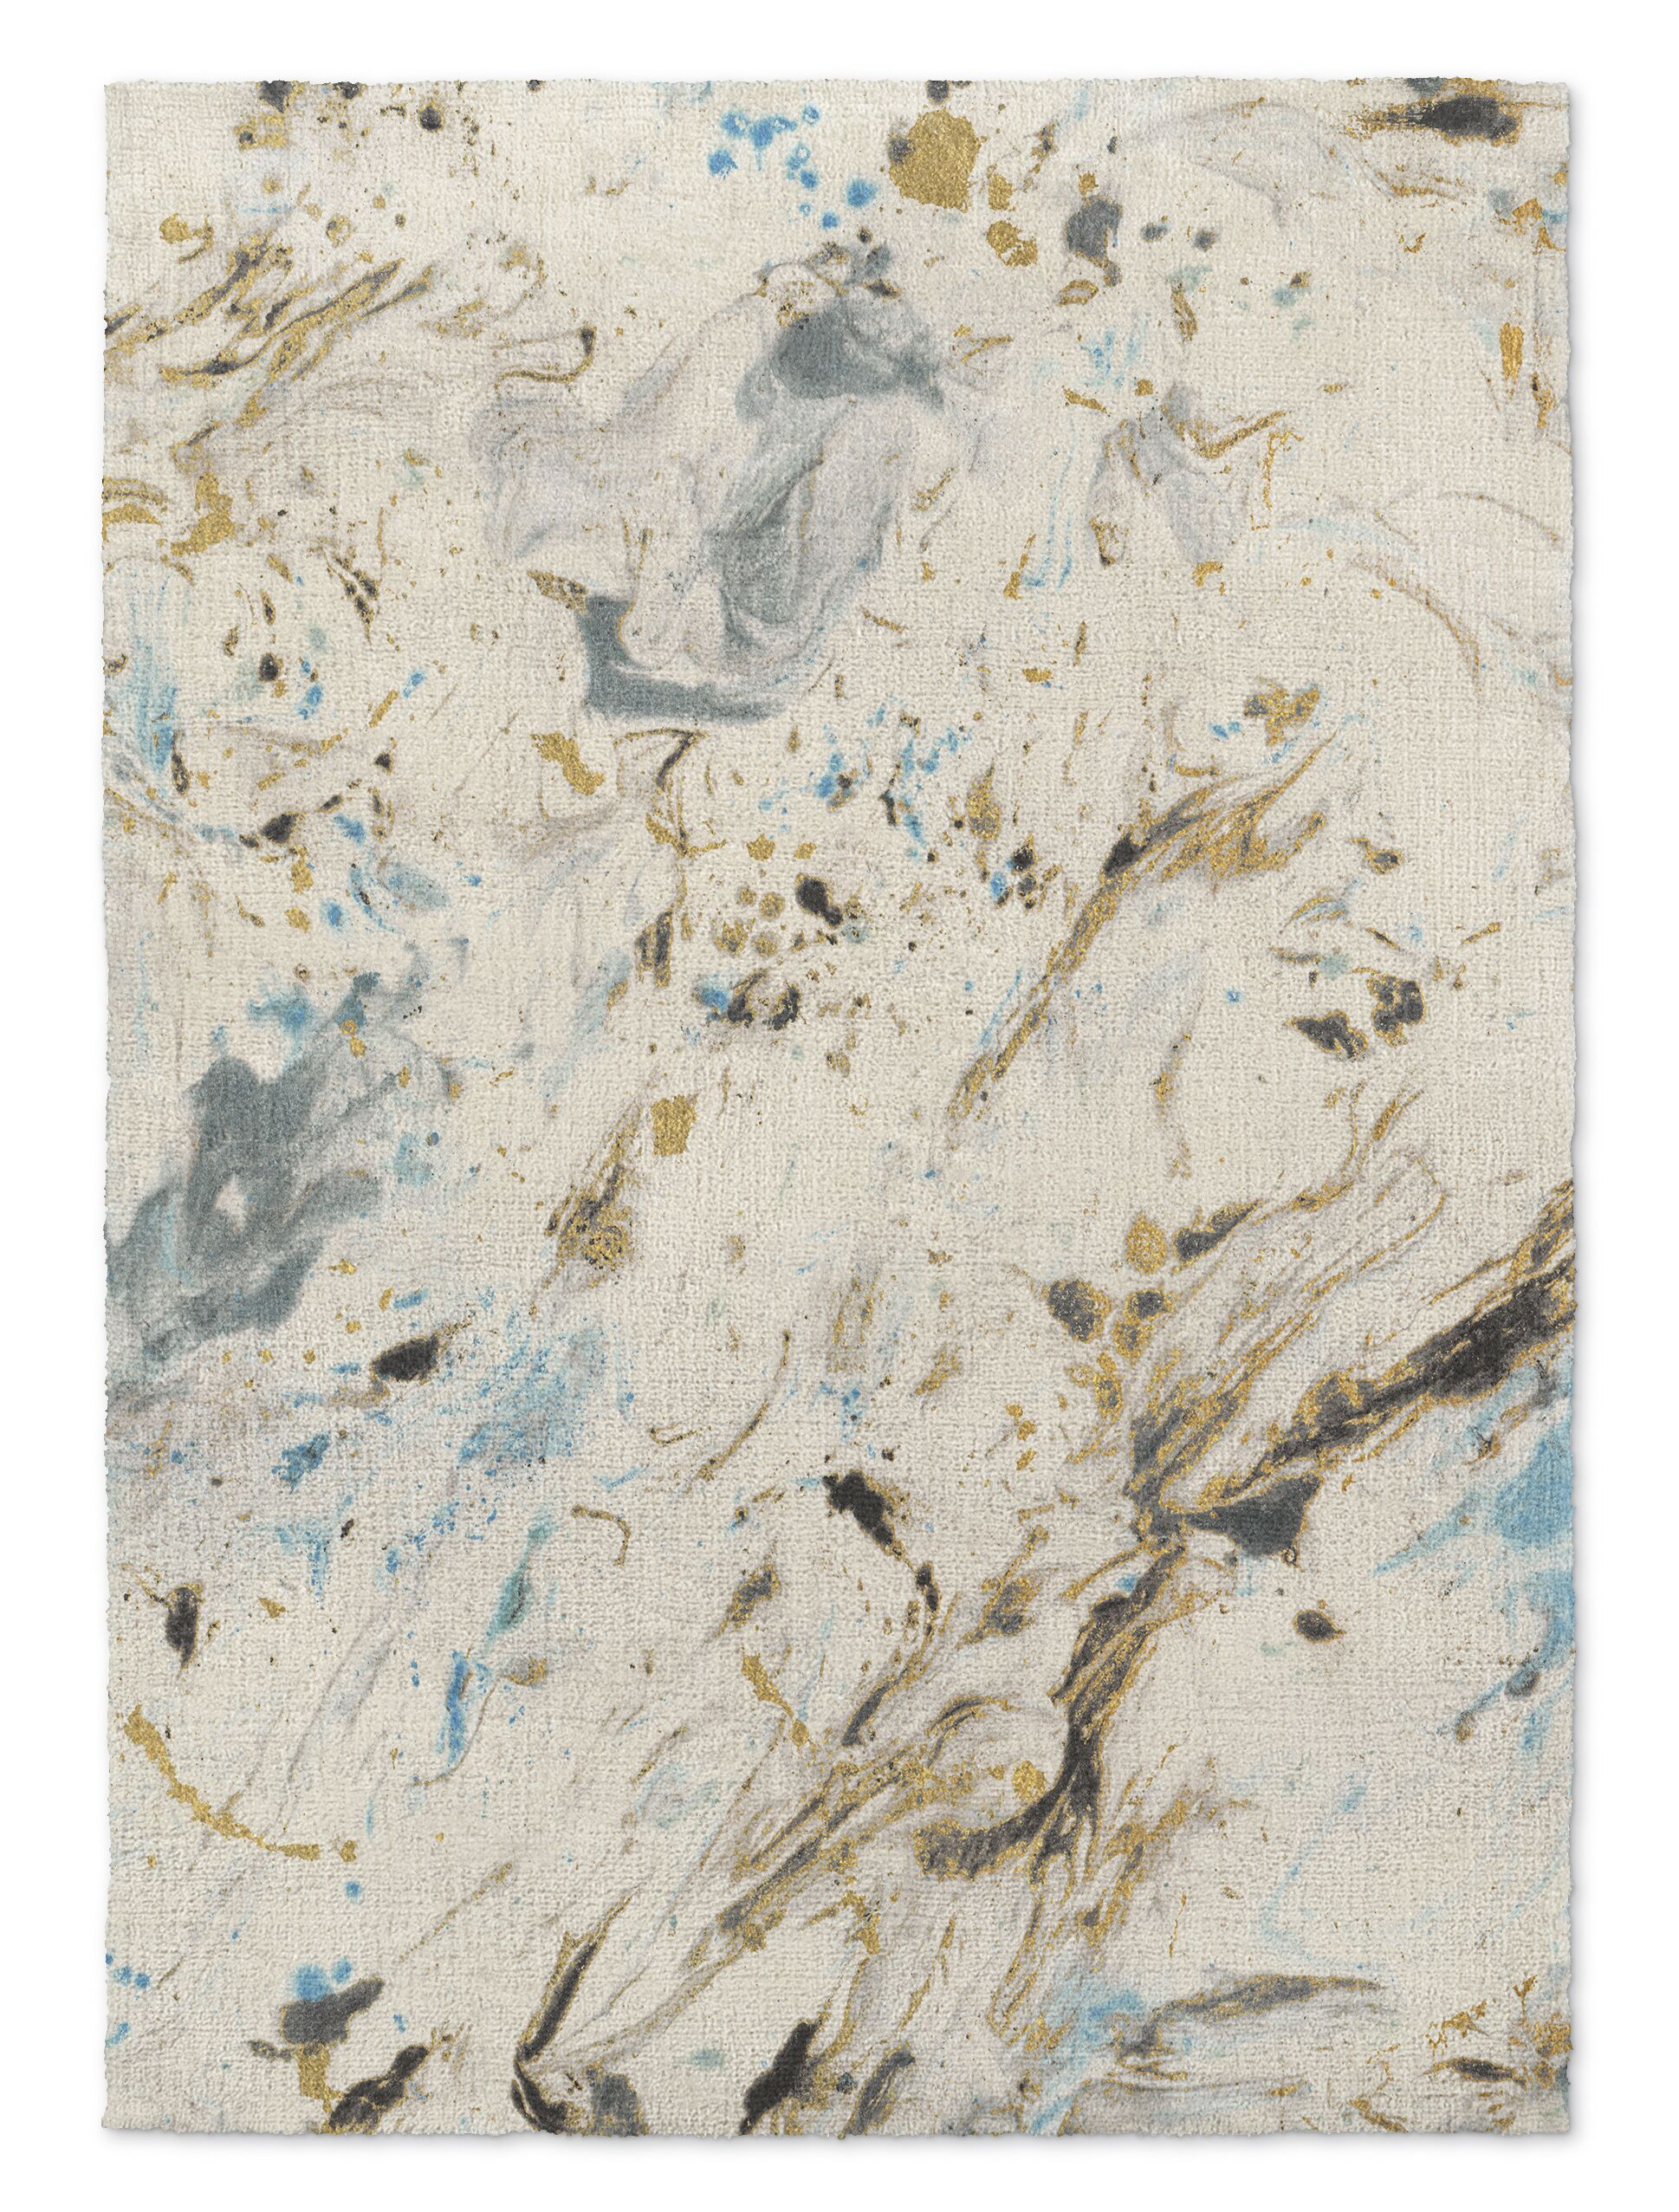 Davila Marbled Blue/Gray Area Rug Rug Size: Rectangle 5' x 7'